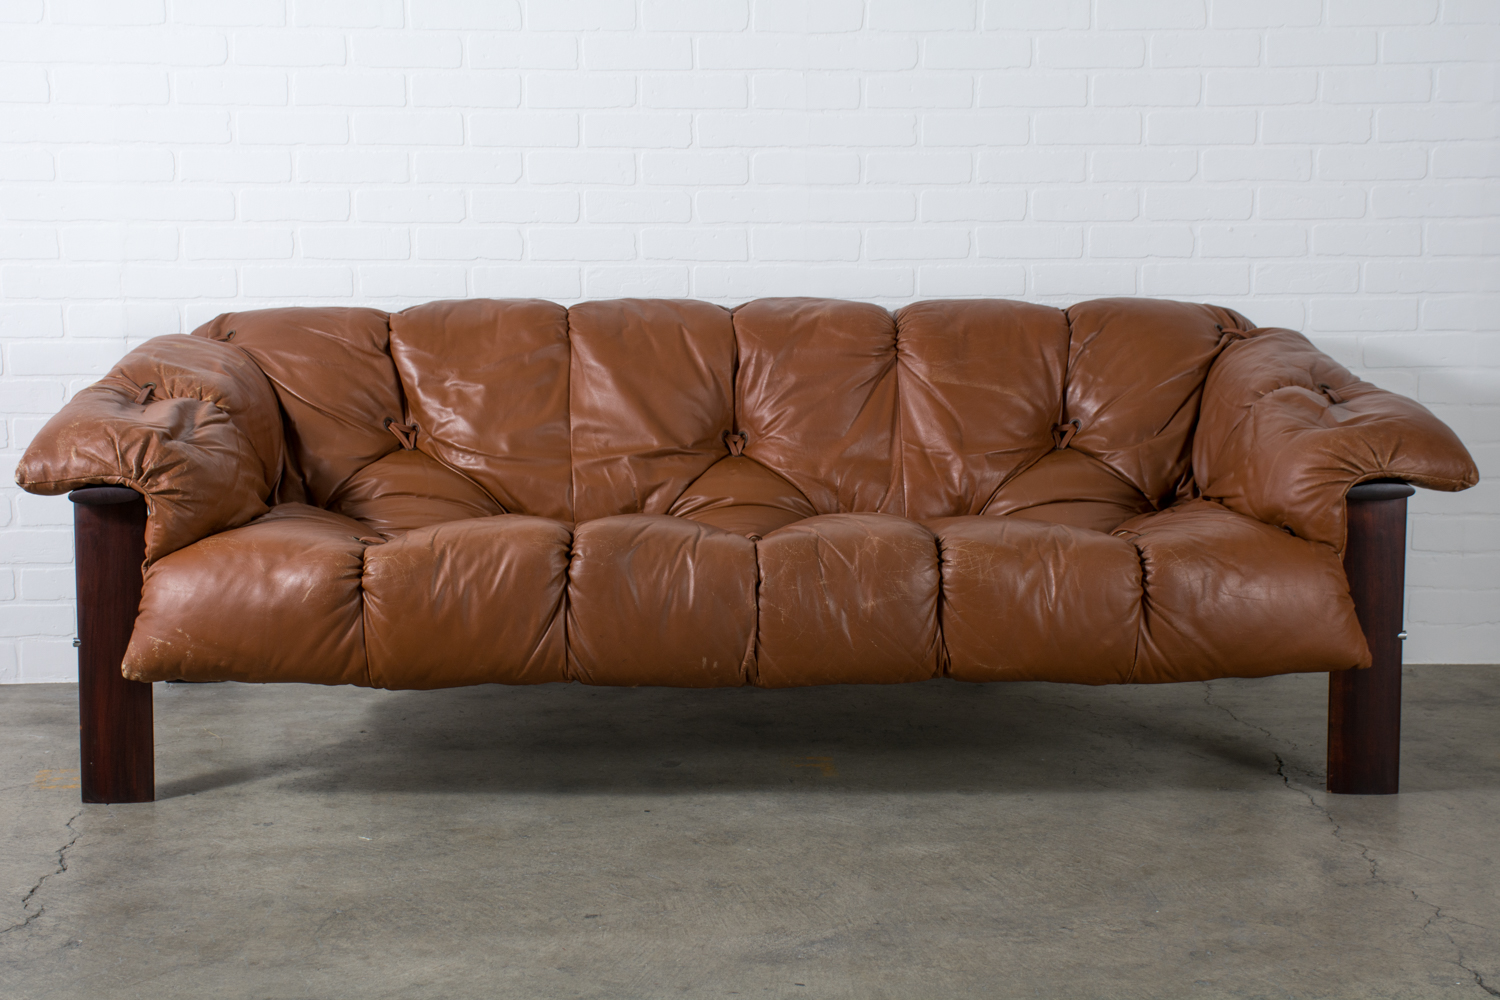 Percival Lafer Leather Sofa, Brazil, 1960s